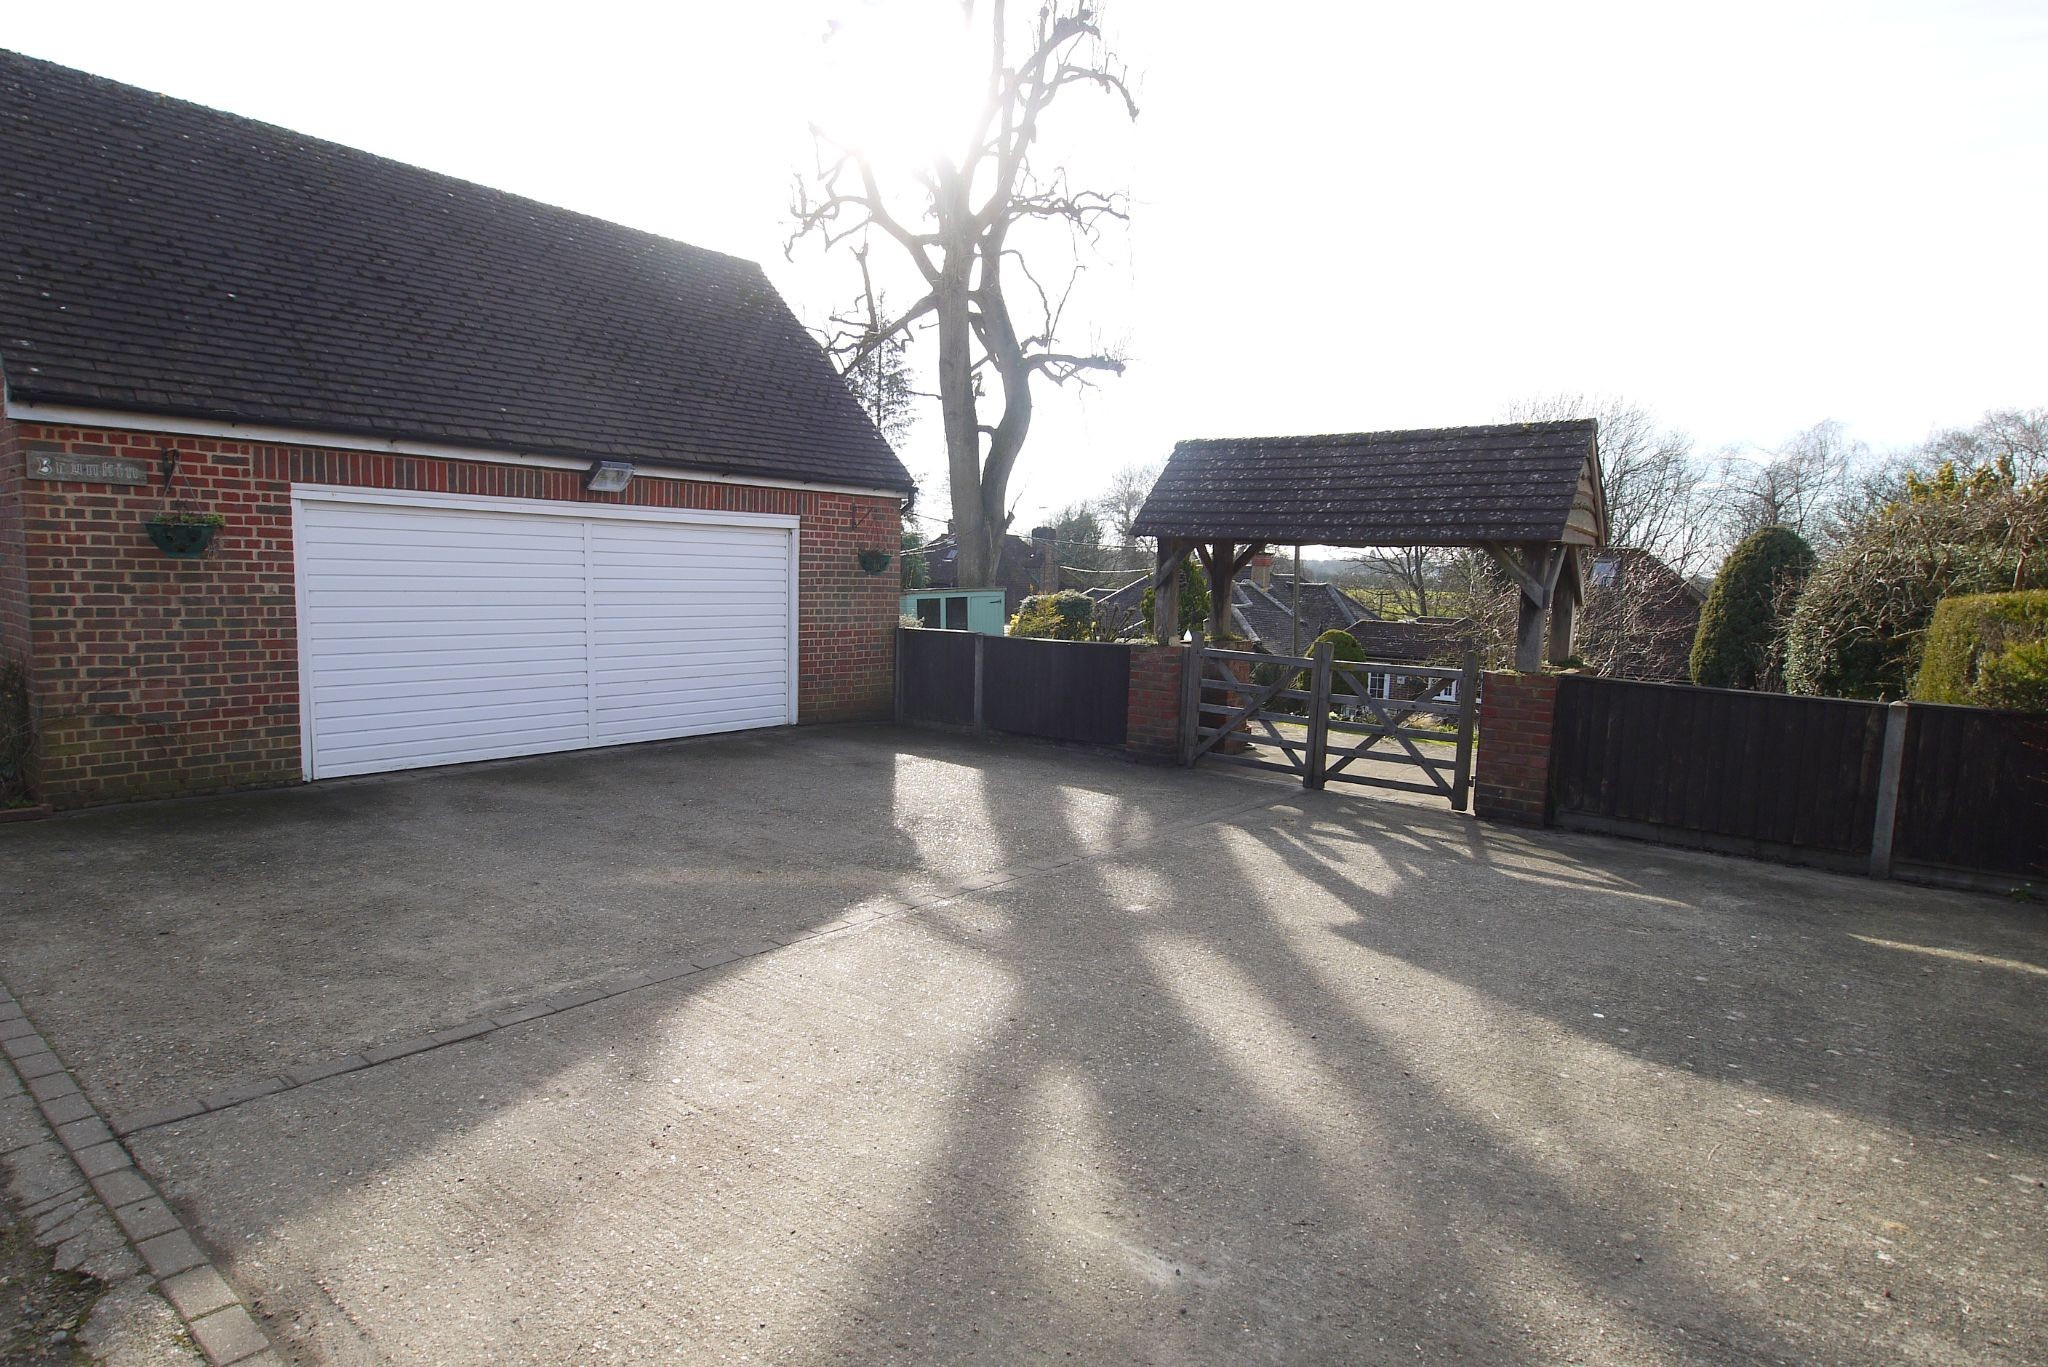 2 bedroom detached bungalow For Sale in Badgers Mount - Photograph 12